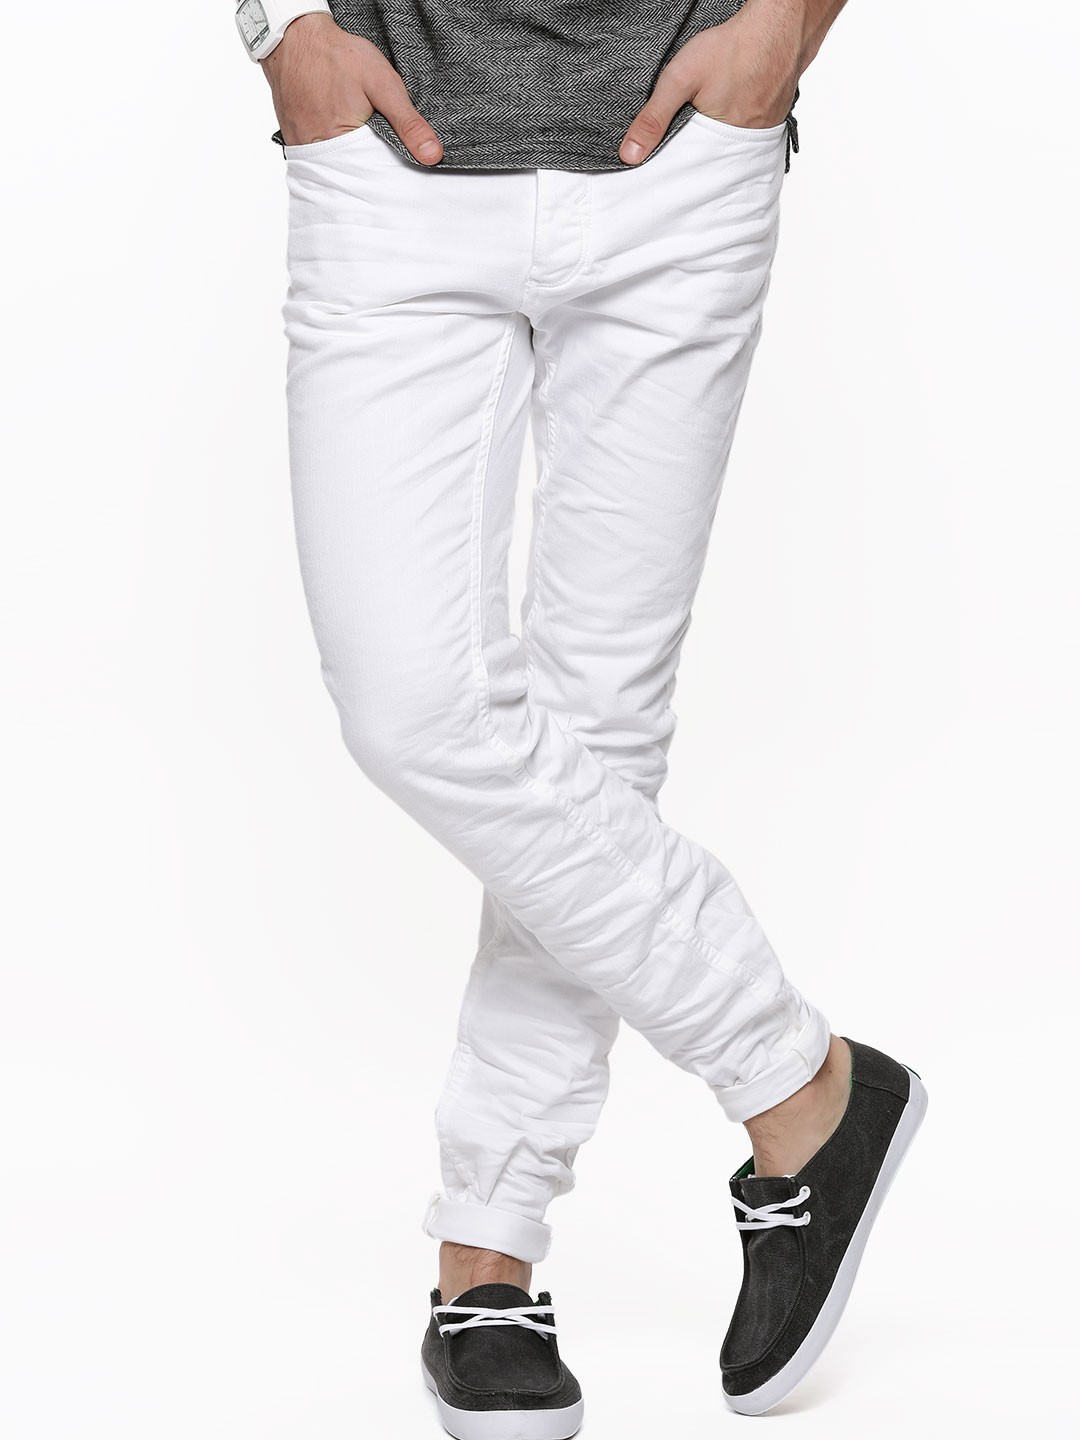 Buy SELECTED HOMME Classic Slim Fit Jeans For Men - Men's White ...